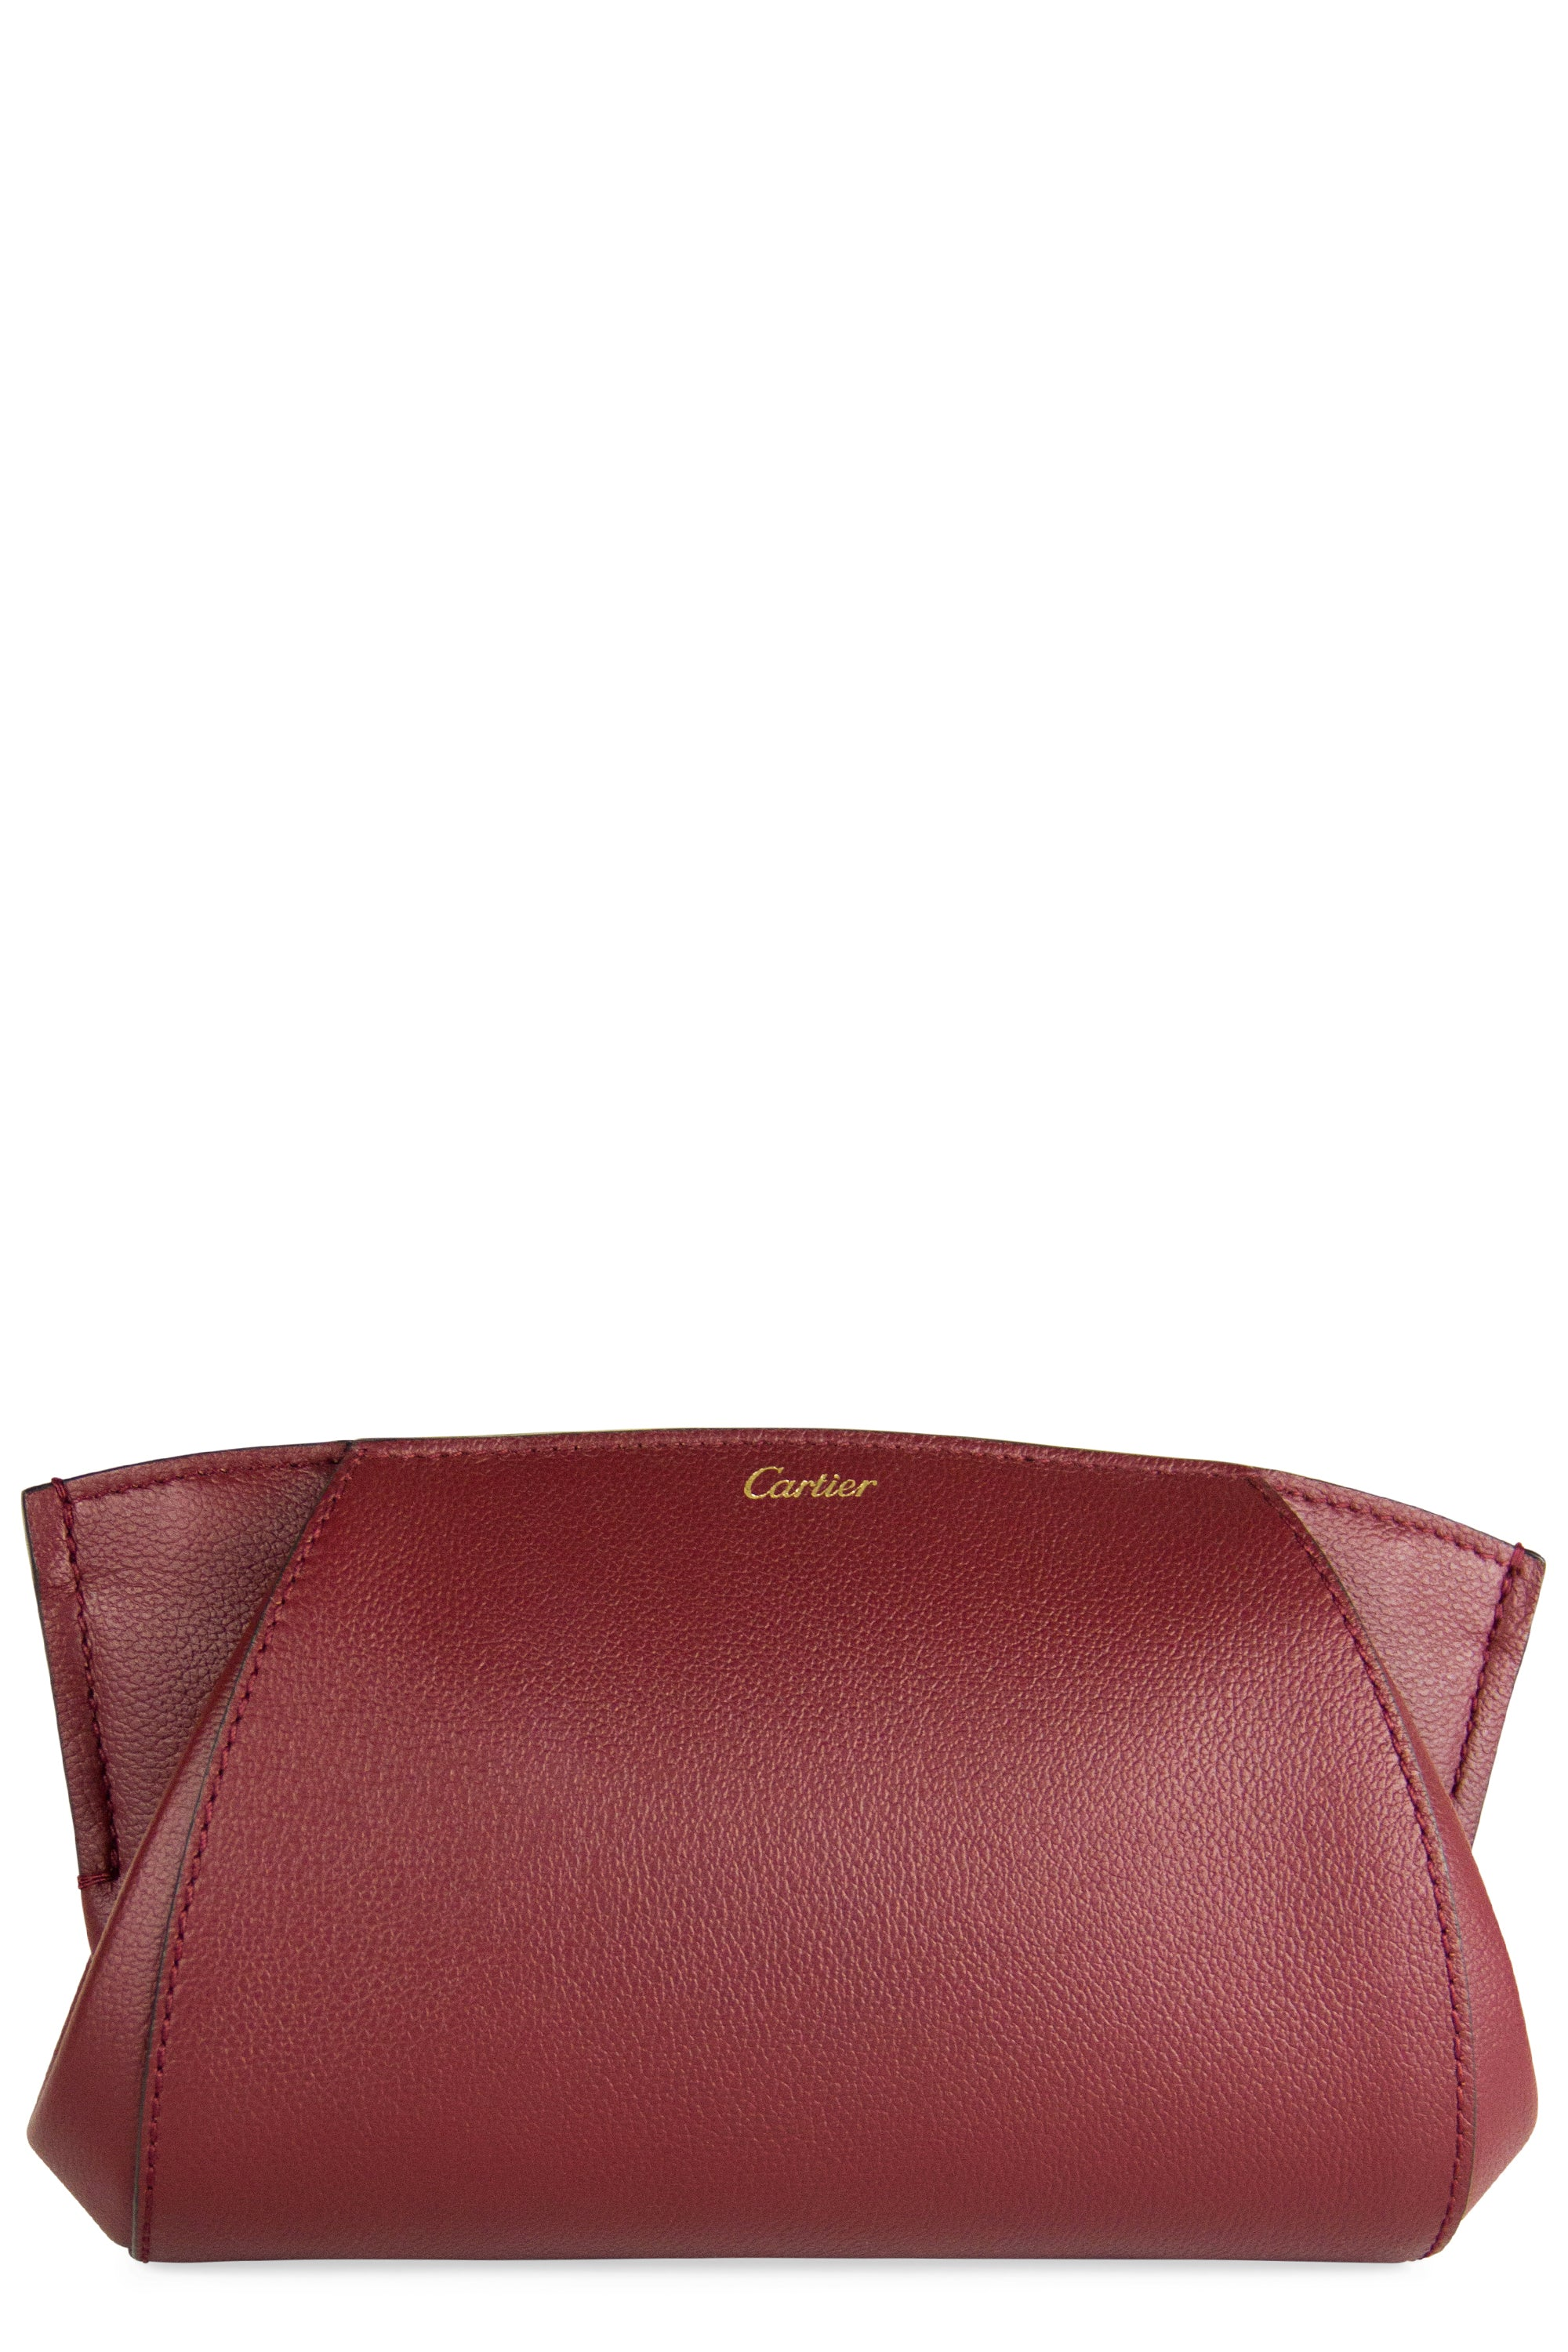 Cartier Clutch Frontalansicht Bordeaux